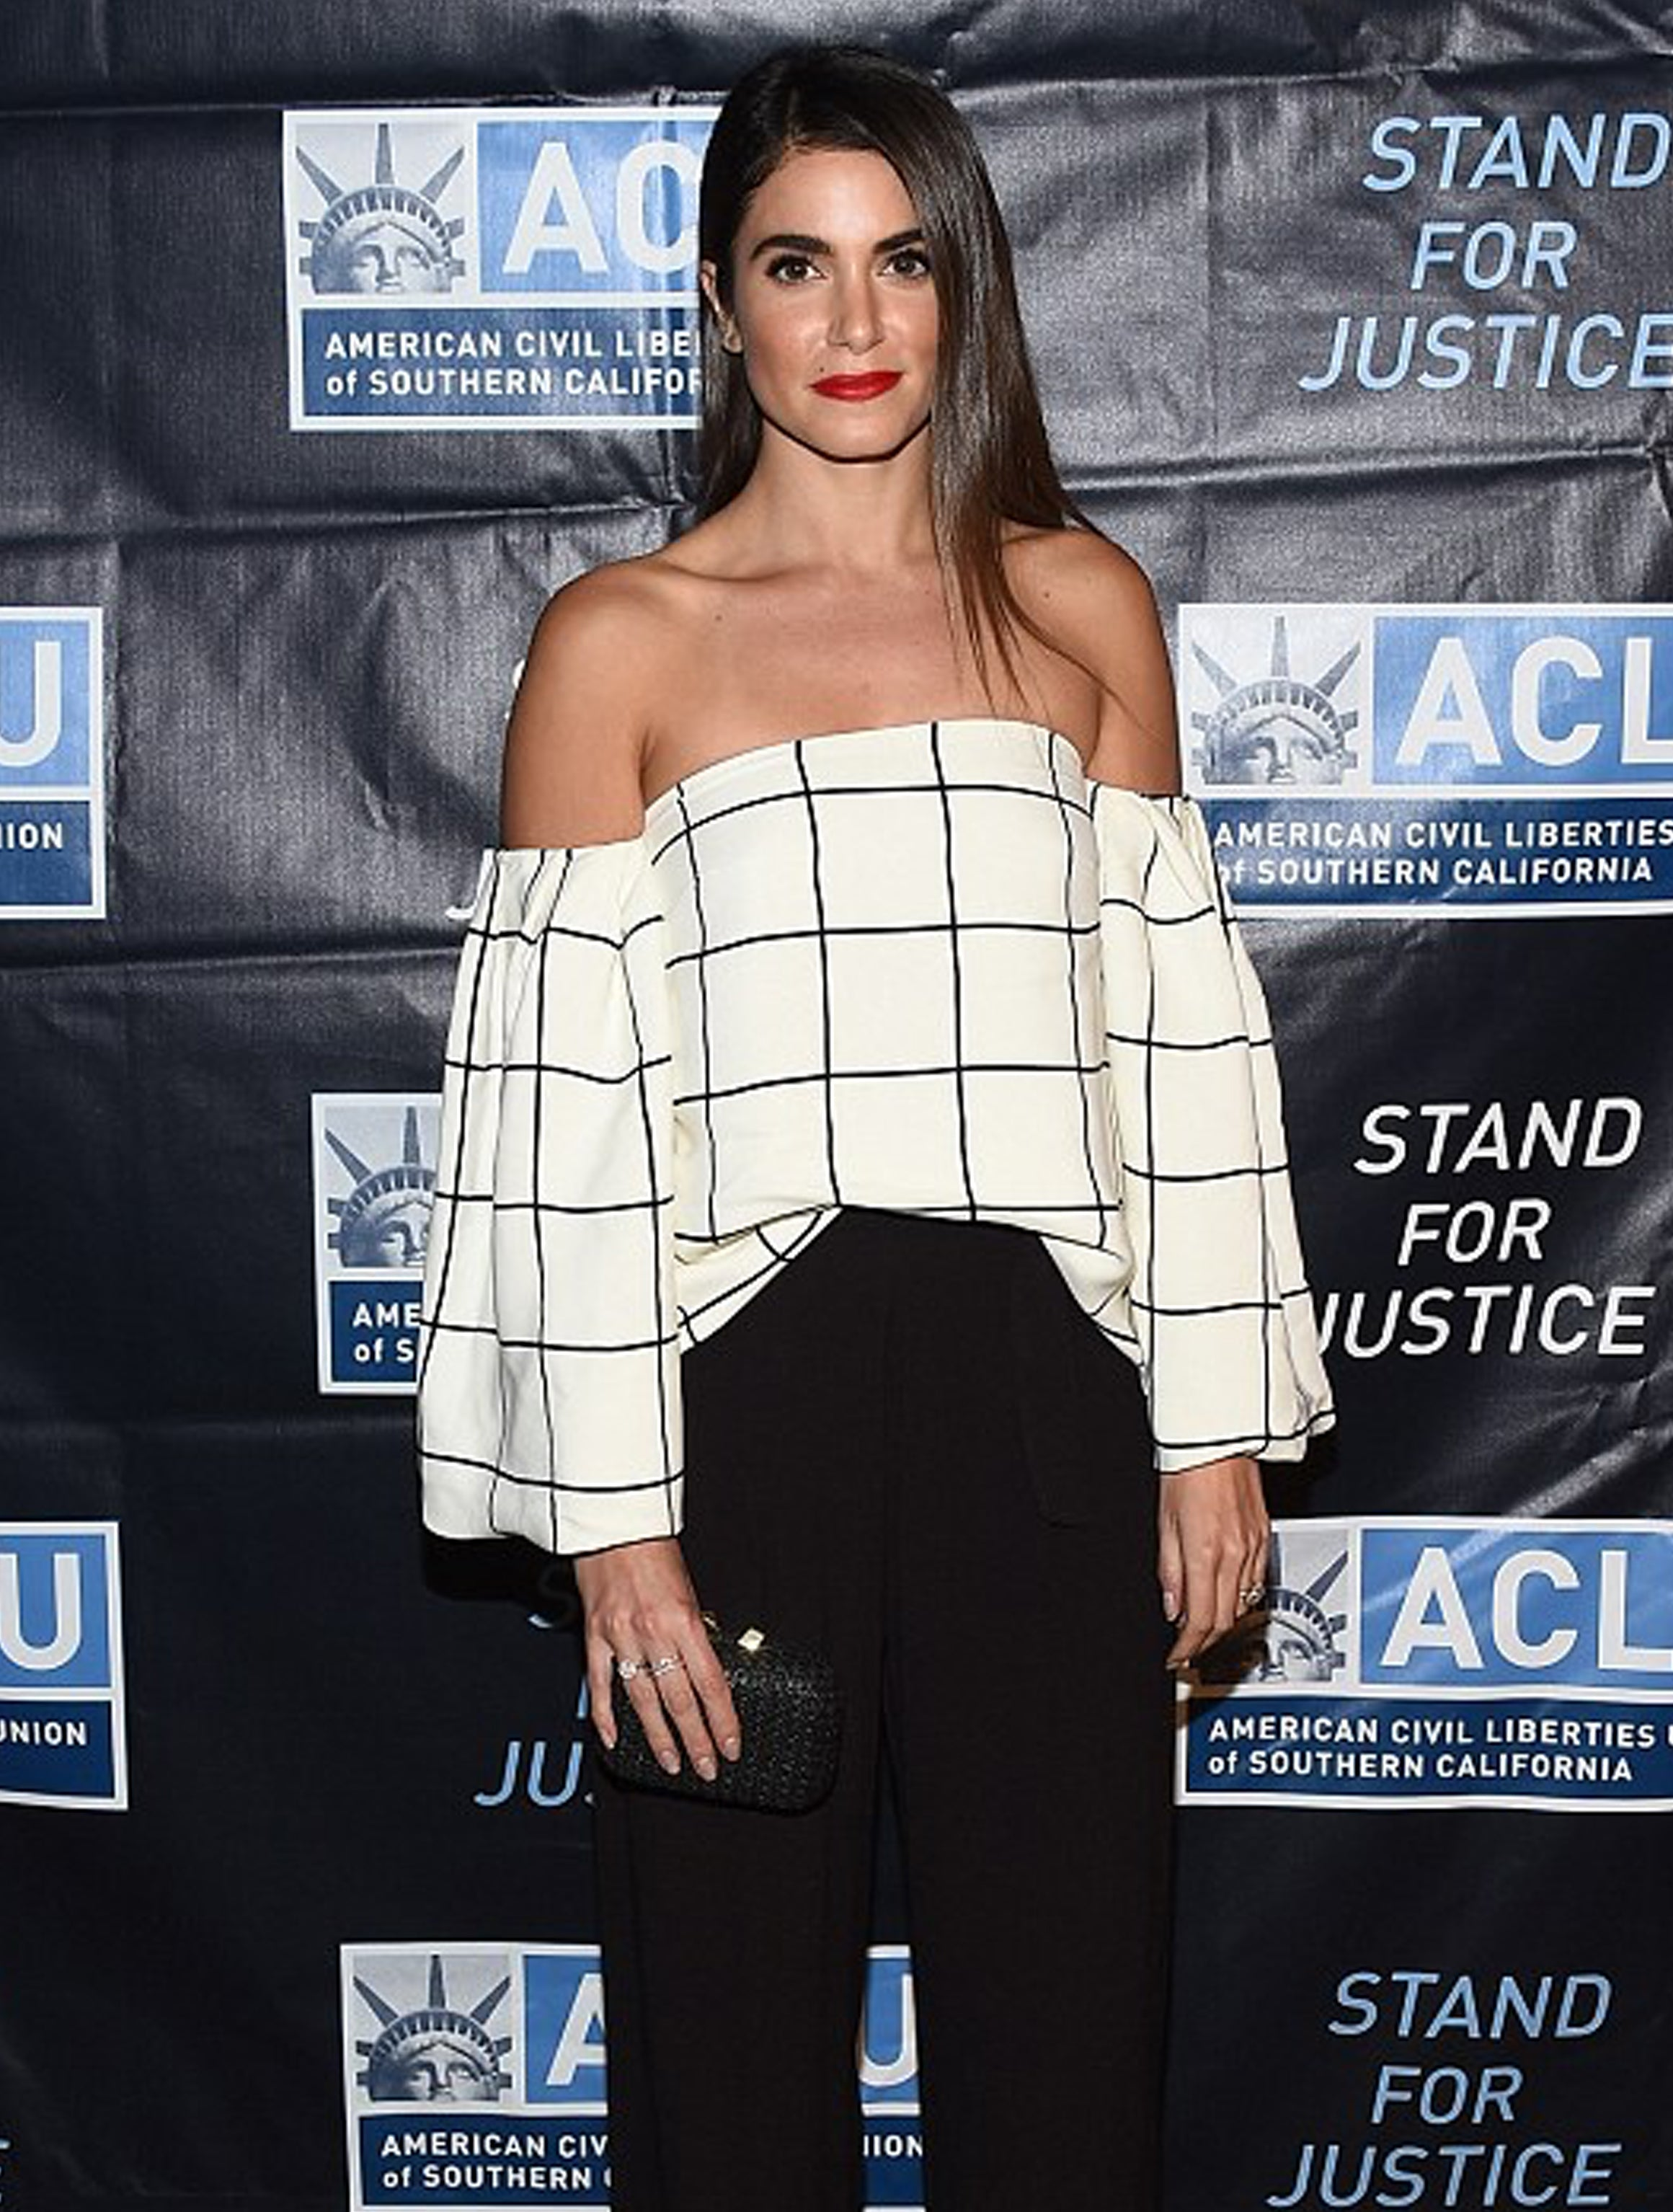 Nikki Reed stuns in white off-the-shoulder patterned top as she attends ACLU dinner in LA